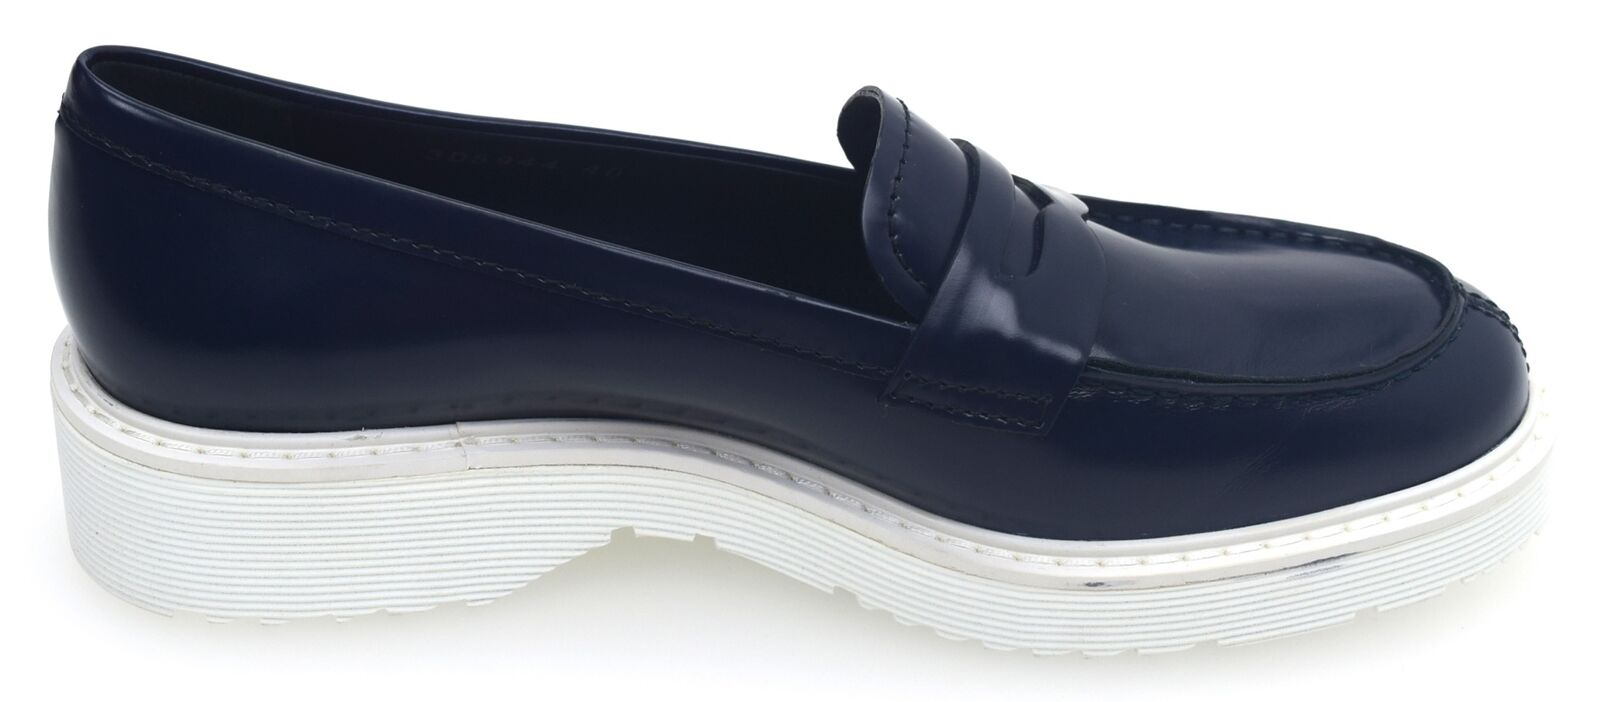 PRADA WOMAN LOAFERS chaussures CASUAL CASUAL CASUAL FREE TIME LEATHER CODE 3D5944 bde908